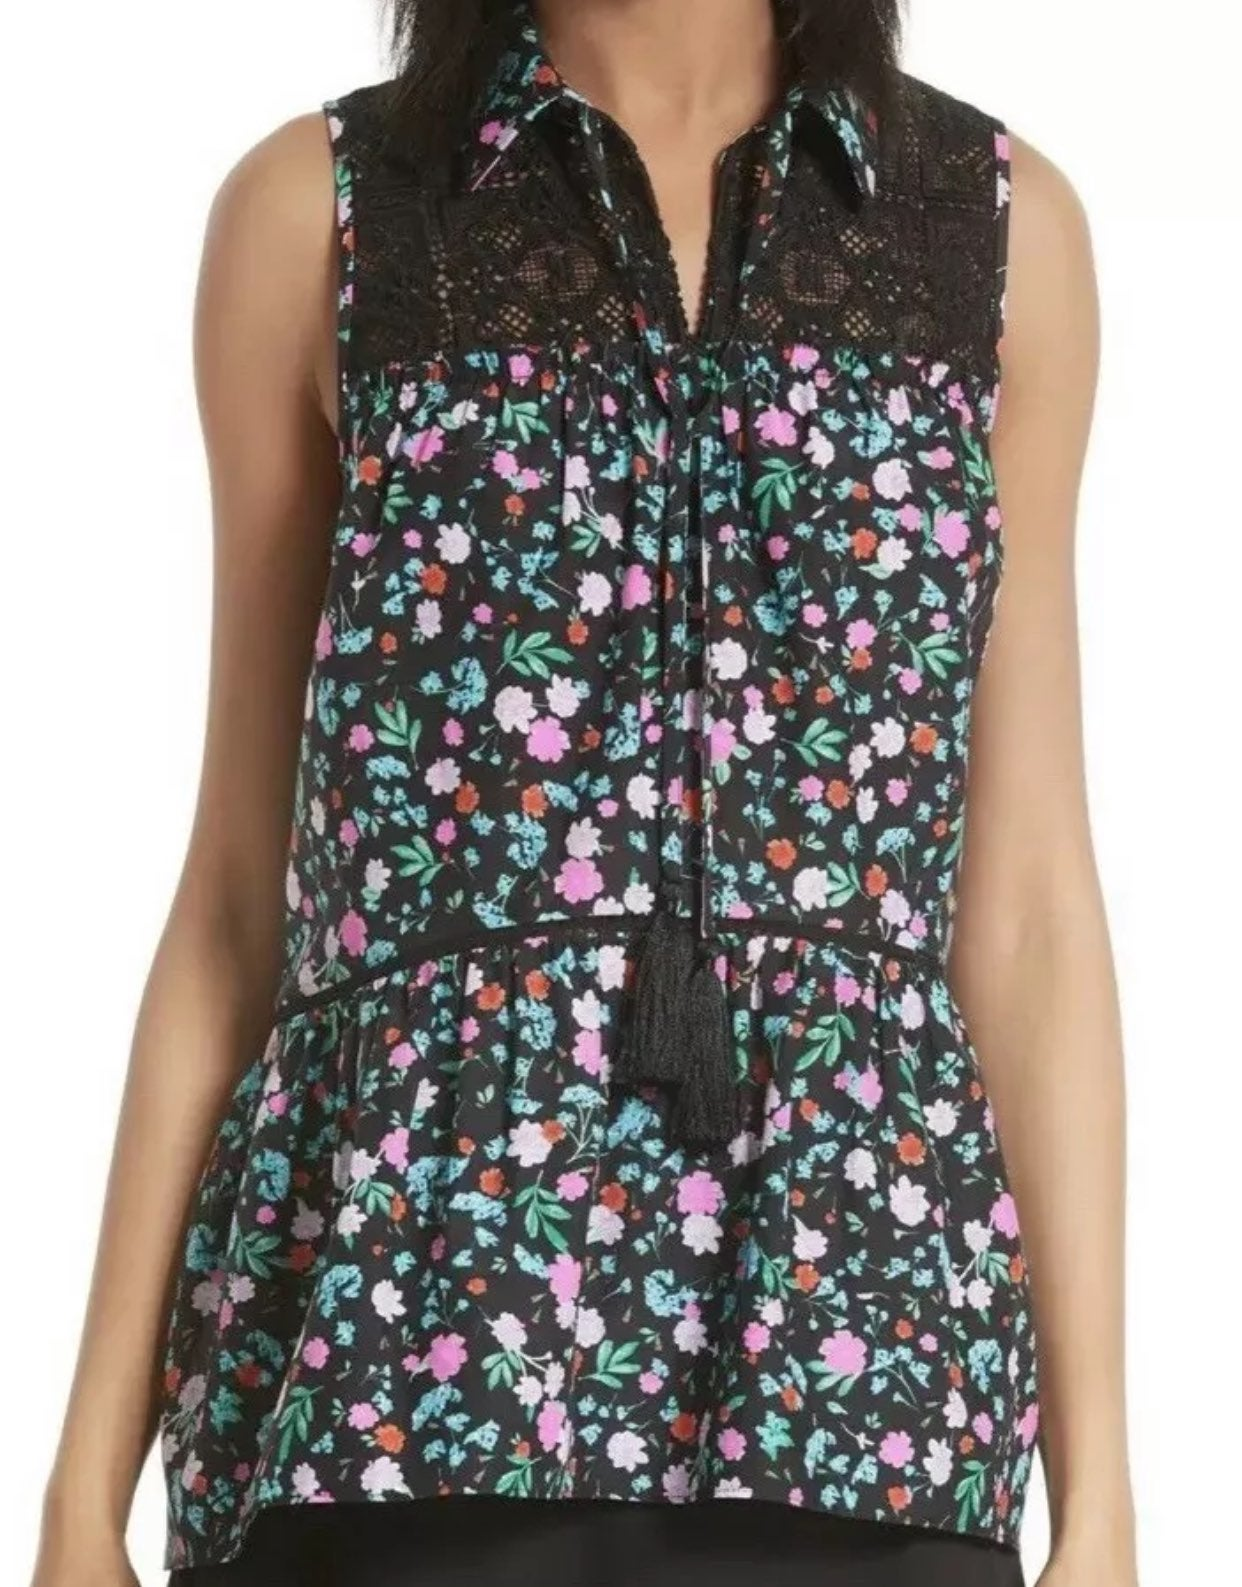 Kate Spade top floral print lace small